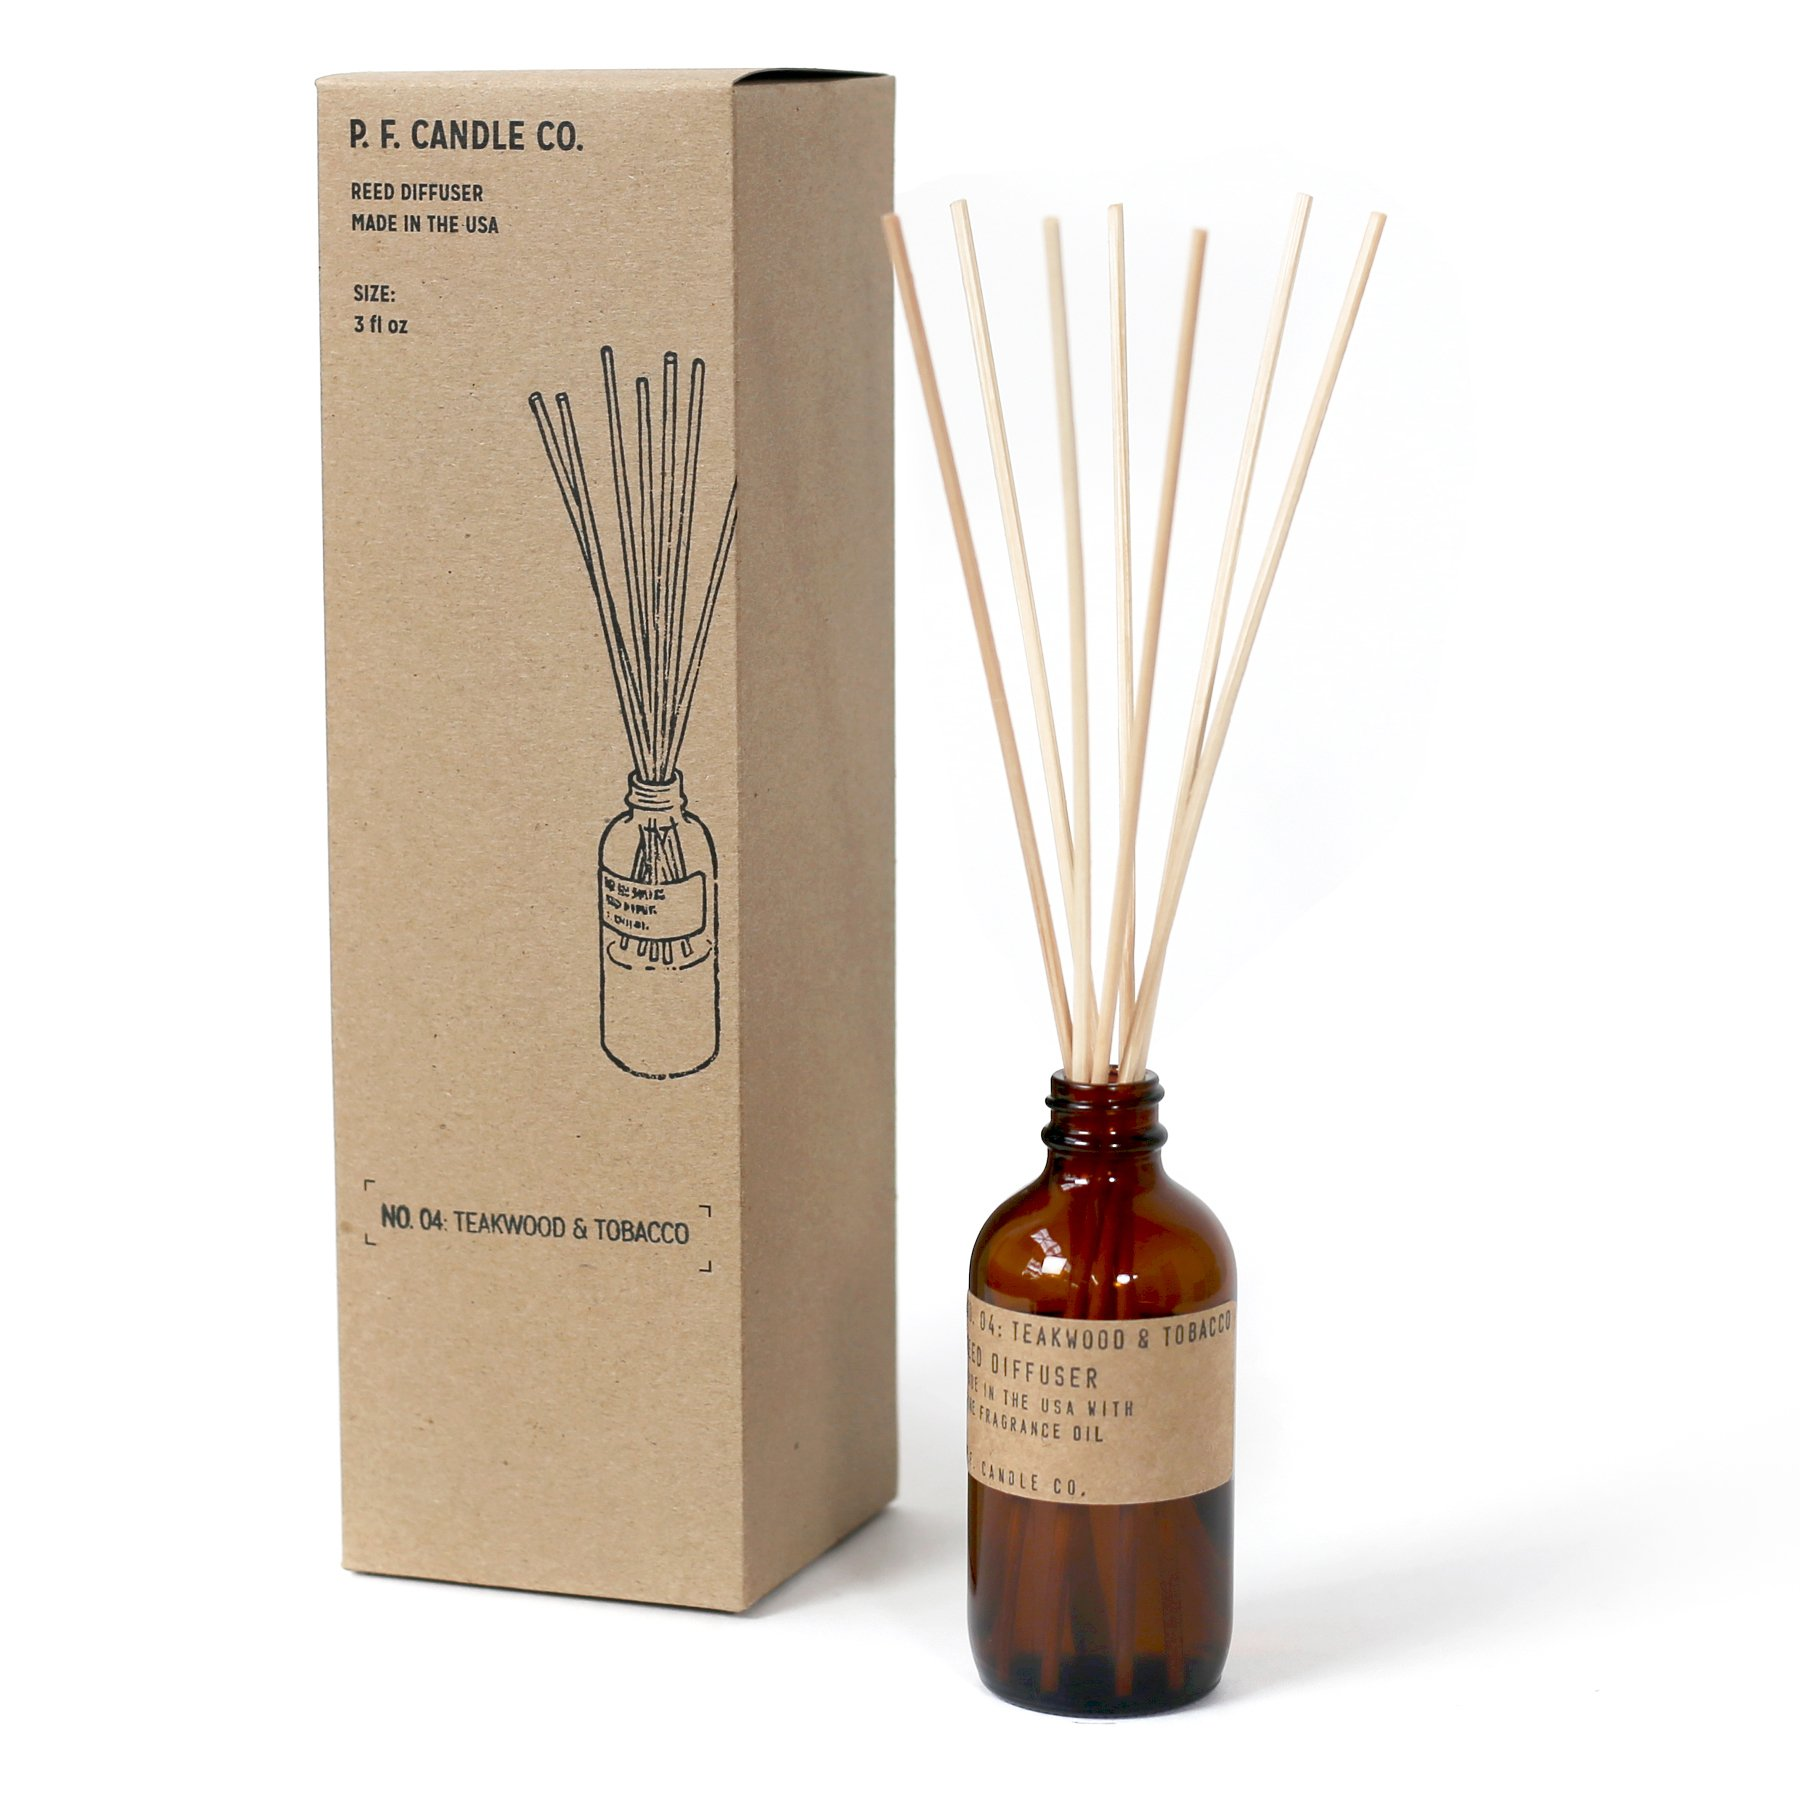 P.F. Candle Co. - No. 04: Teakwood & Tobacco Diffuser by P.F. Candle Co. (Image #2)